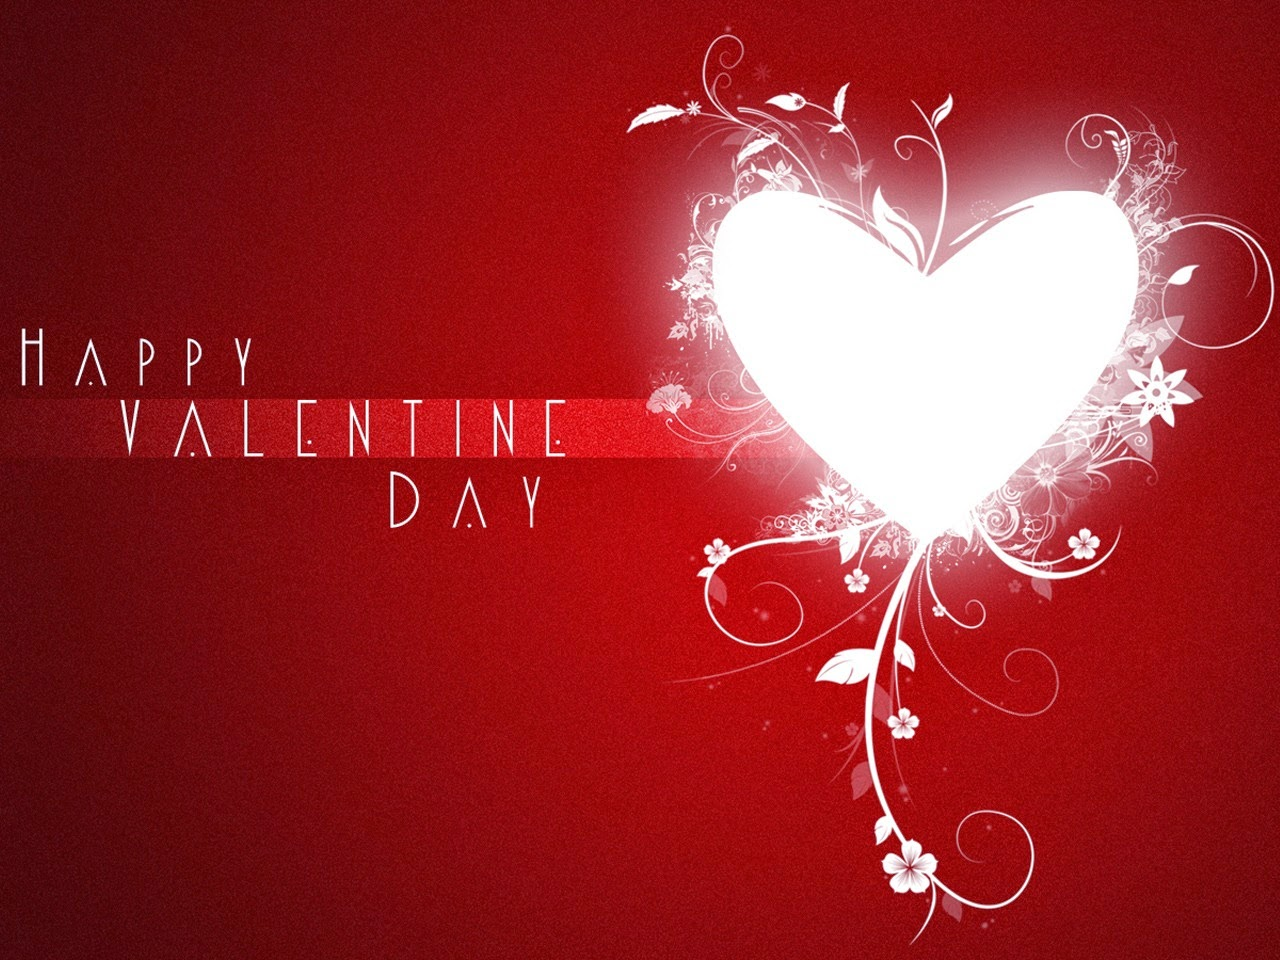 Happy Valentines Day 2016 Greeting Cards – Happy Valentines Day 2015 Cards